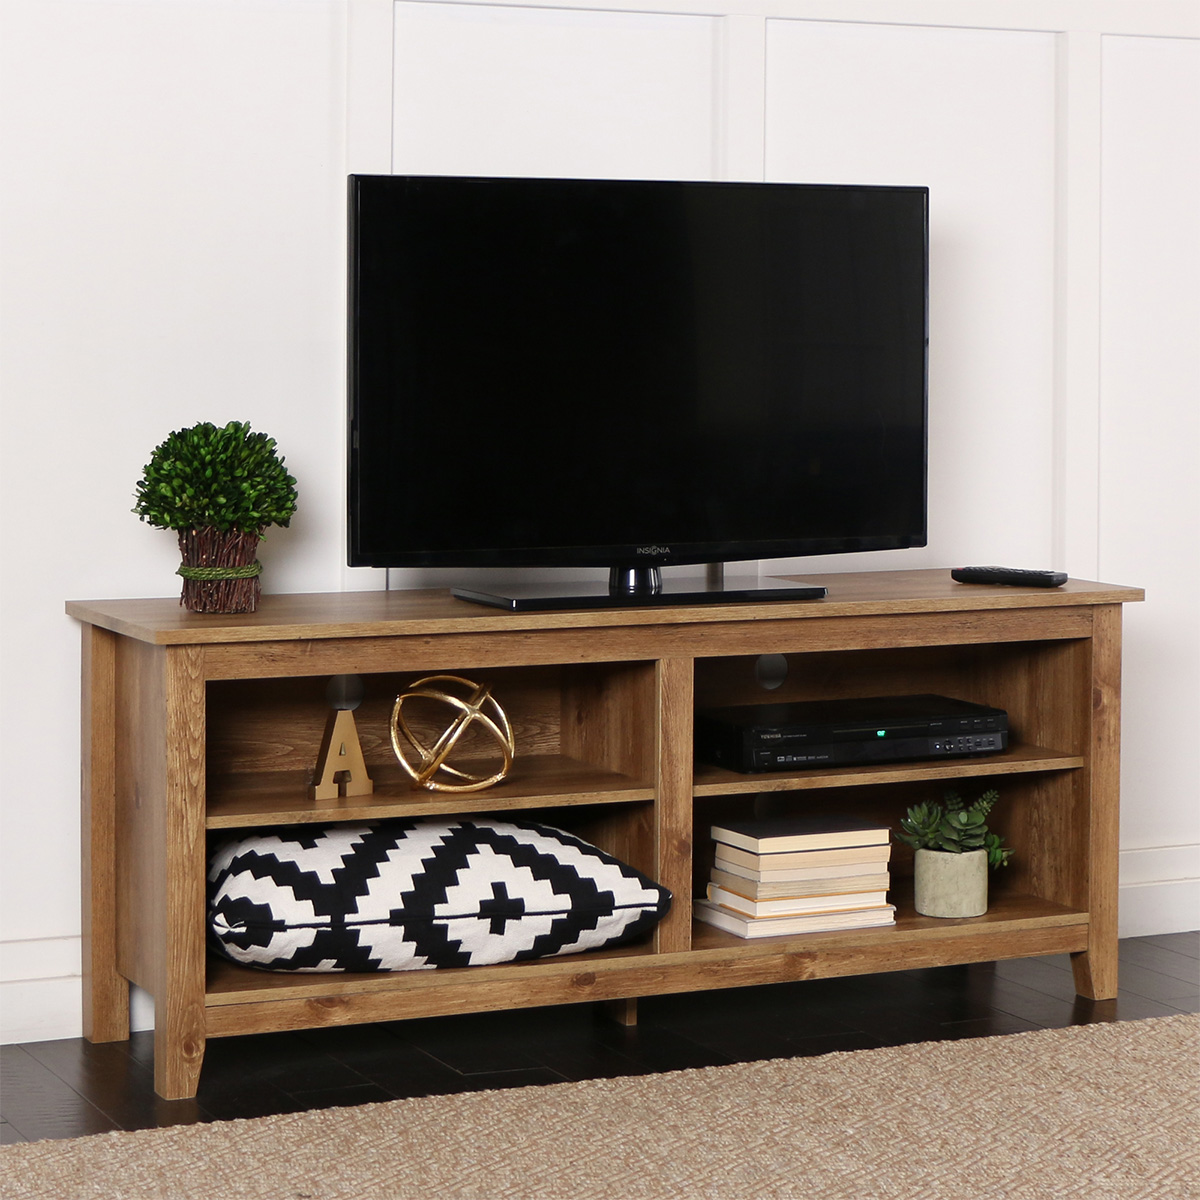 Walker Edison W58cspbw 58 Quot Barnwood Wood Tv Stand Console